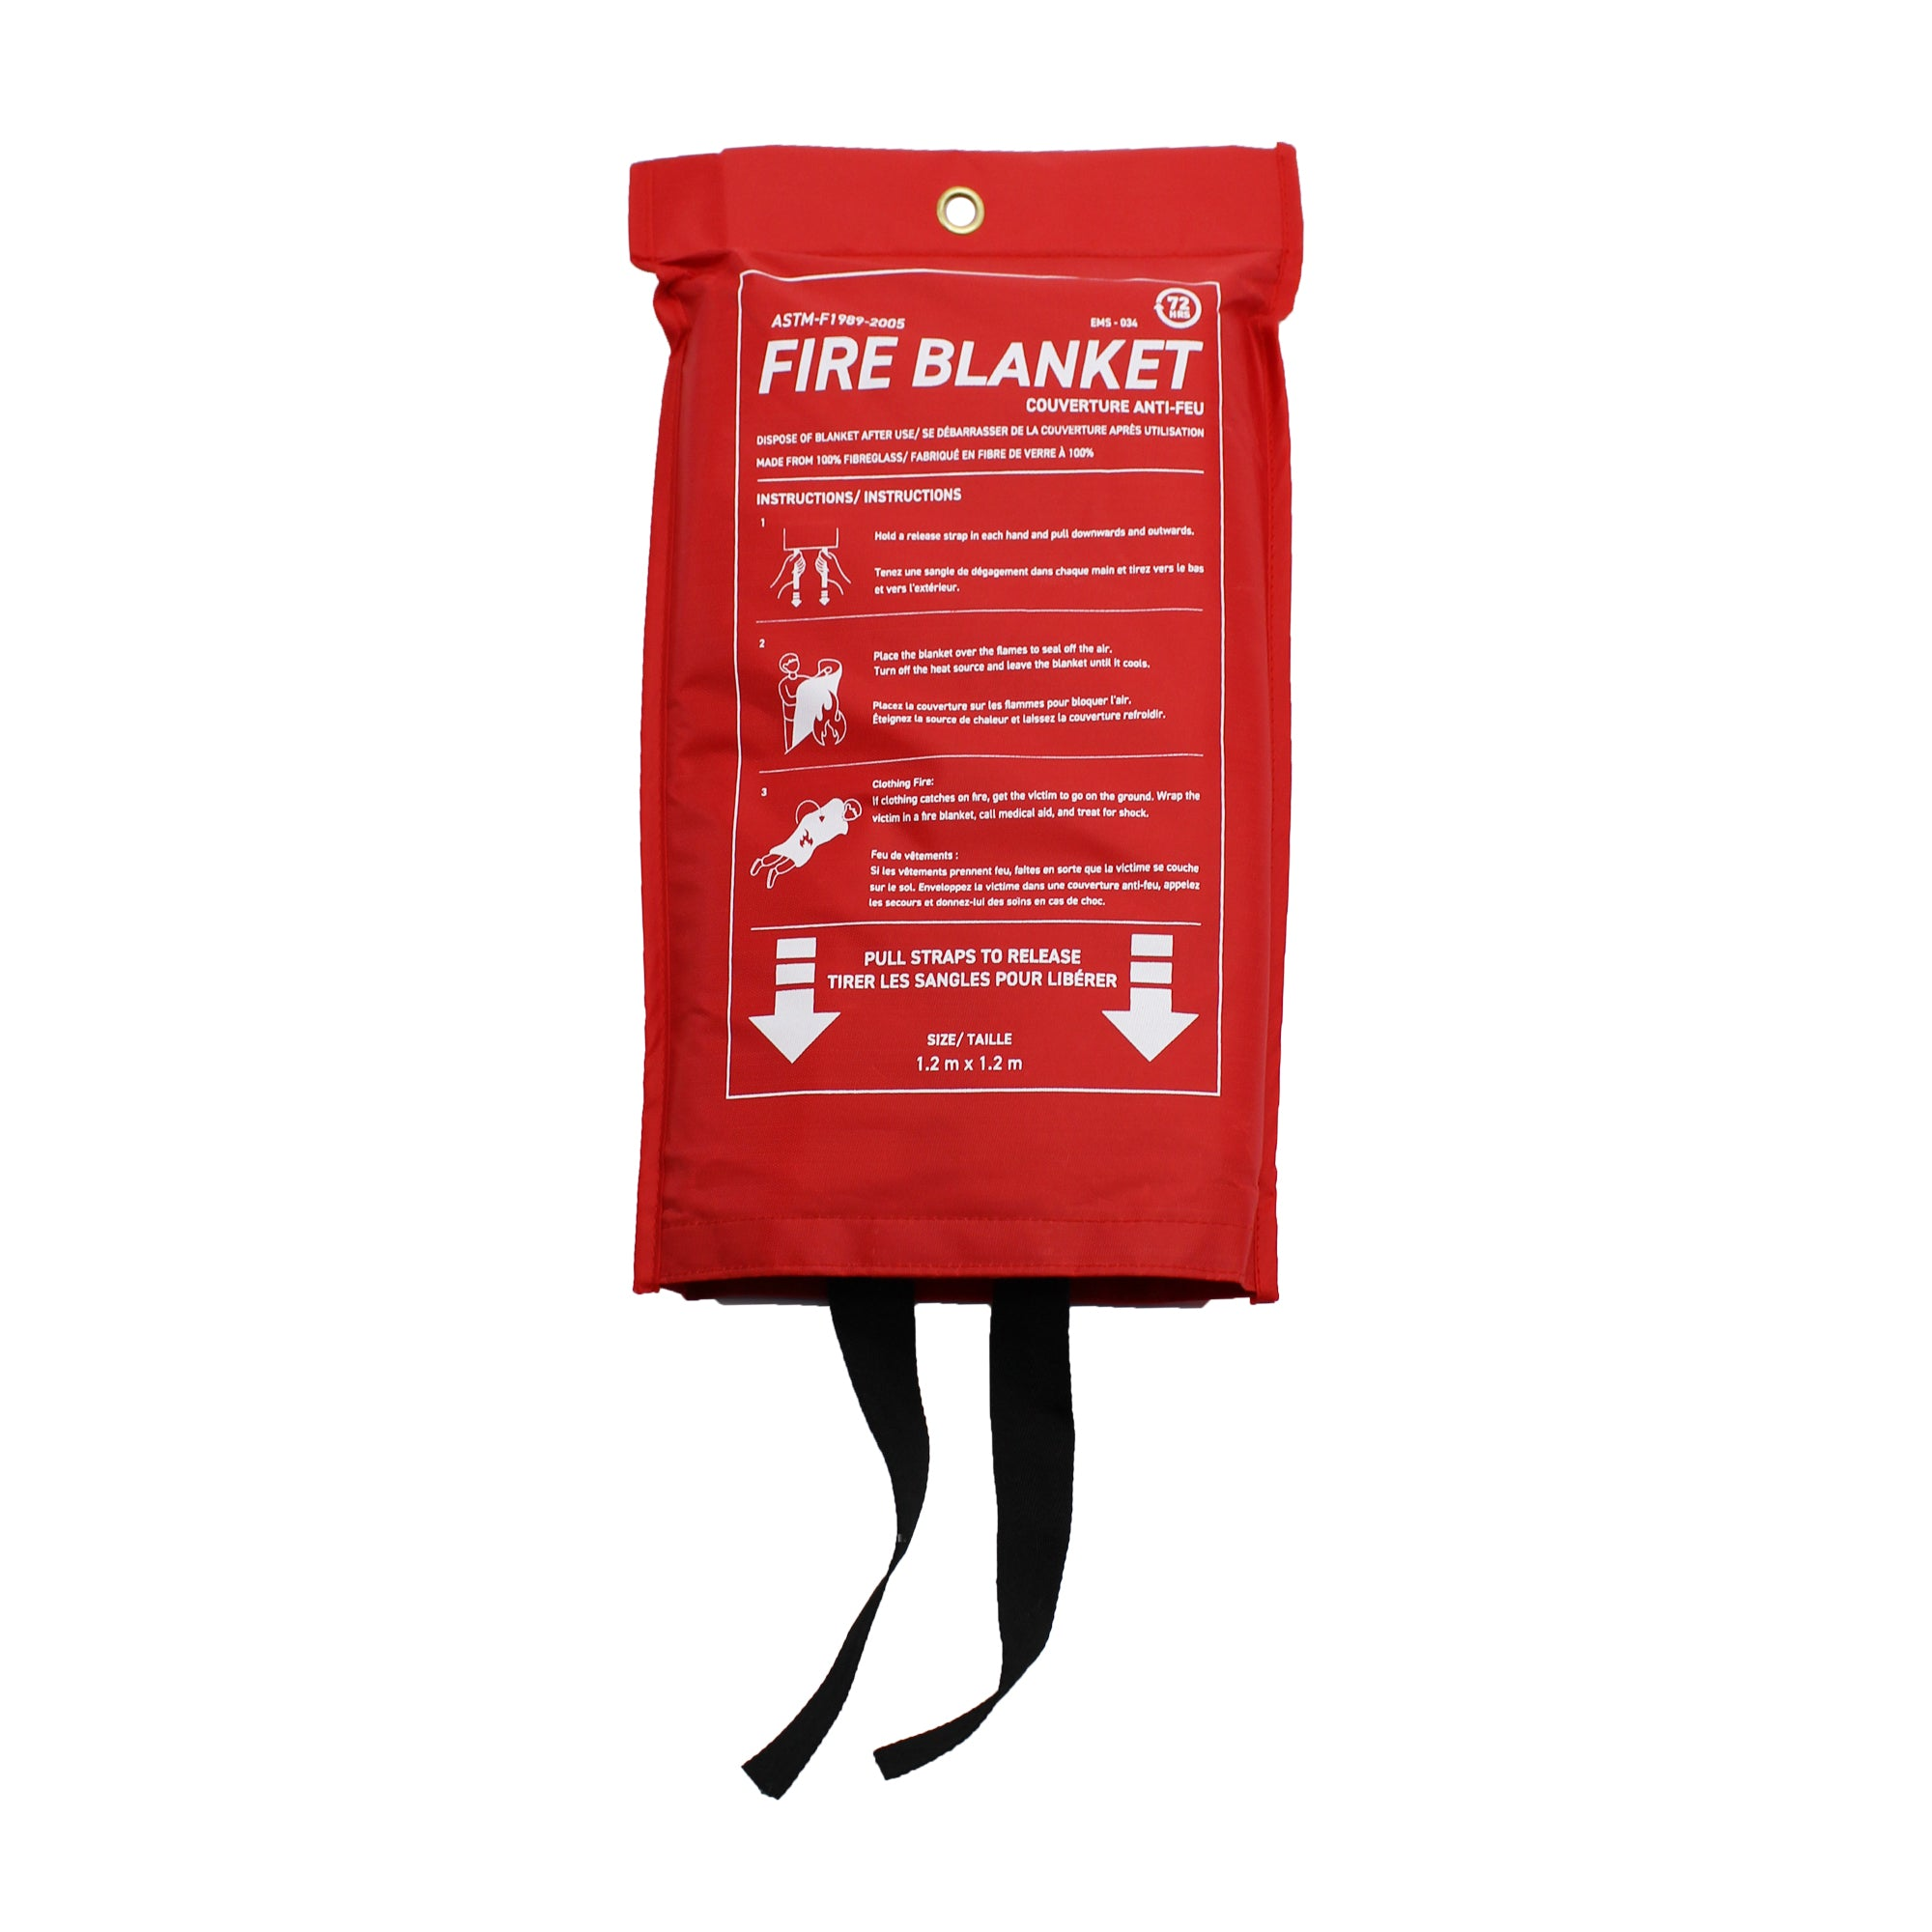 72 HRS Fire Blanket 1.2m x 1.2m with red carrying pouch front